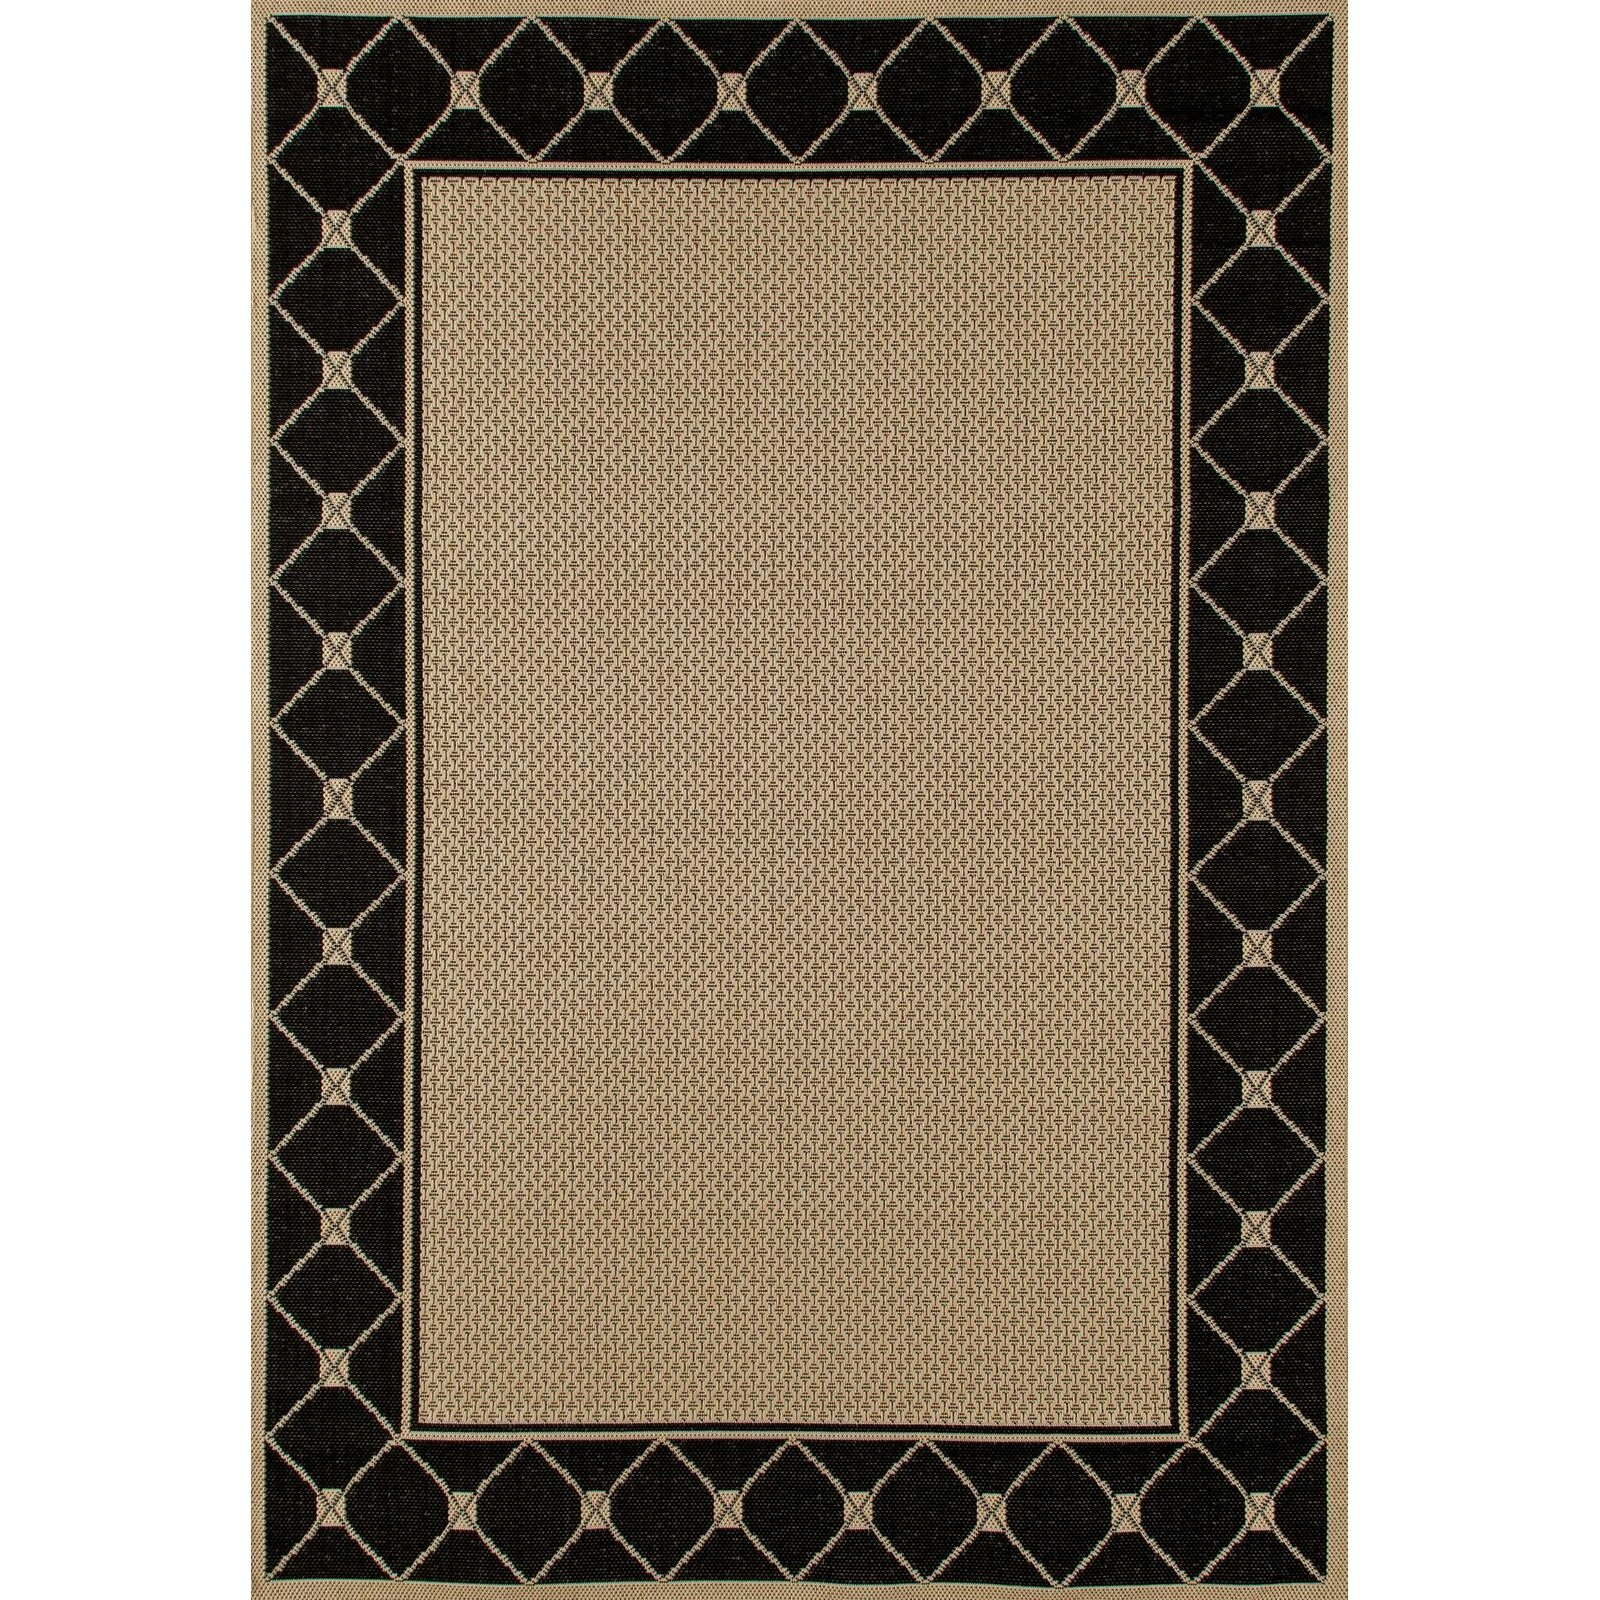 Art carpet plymouth black beige indoor outdoor area rug for Indoor out door rugs